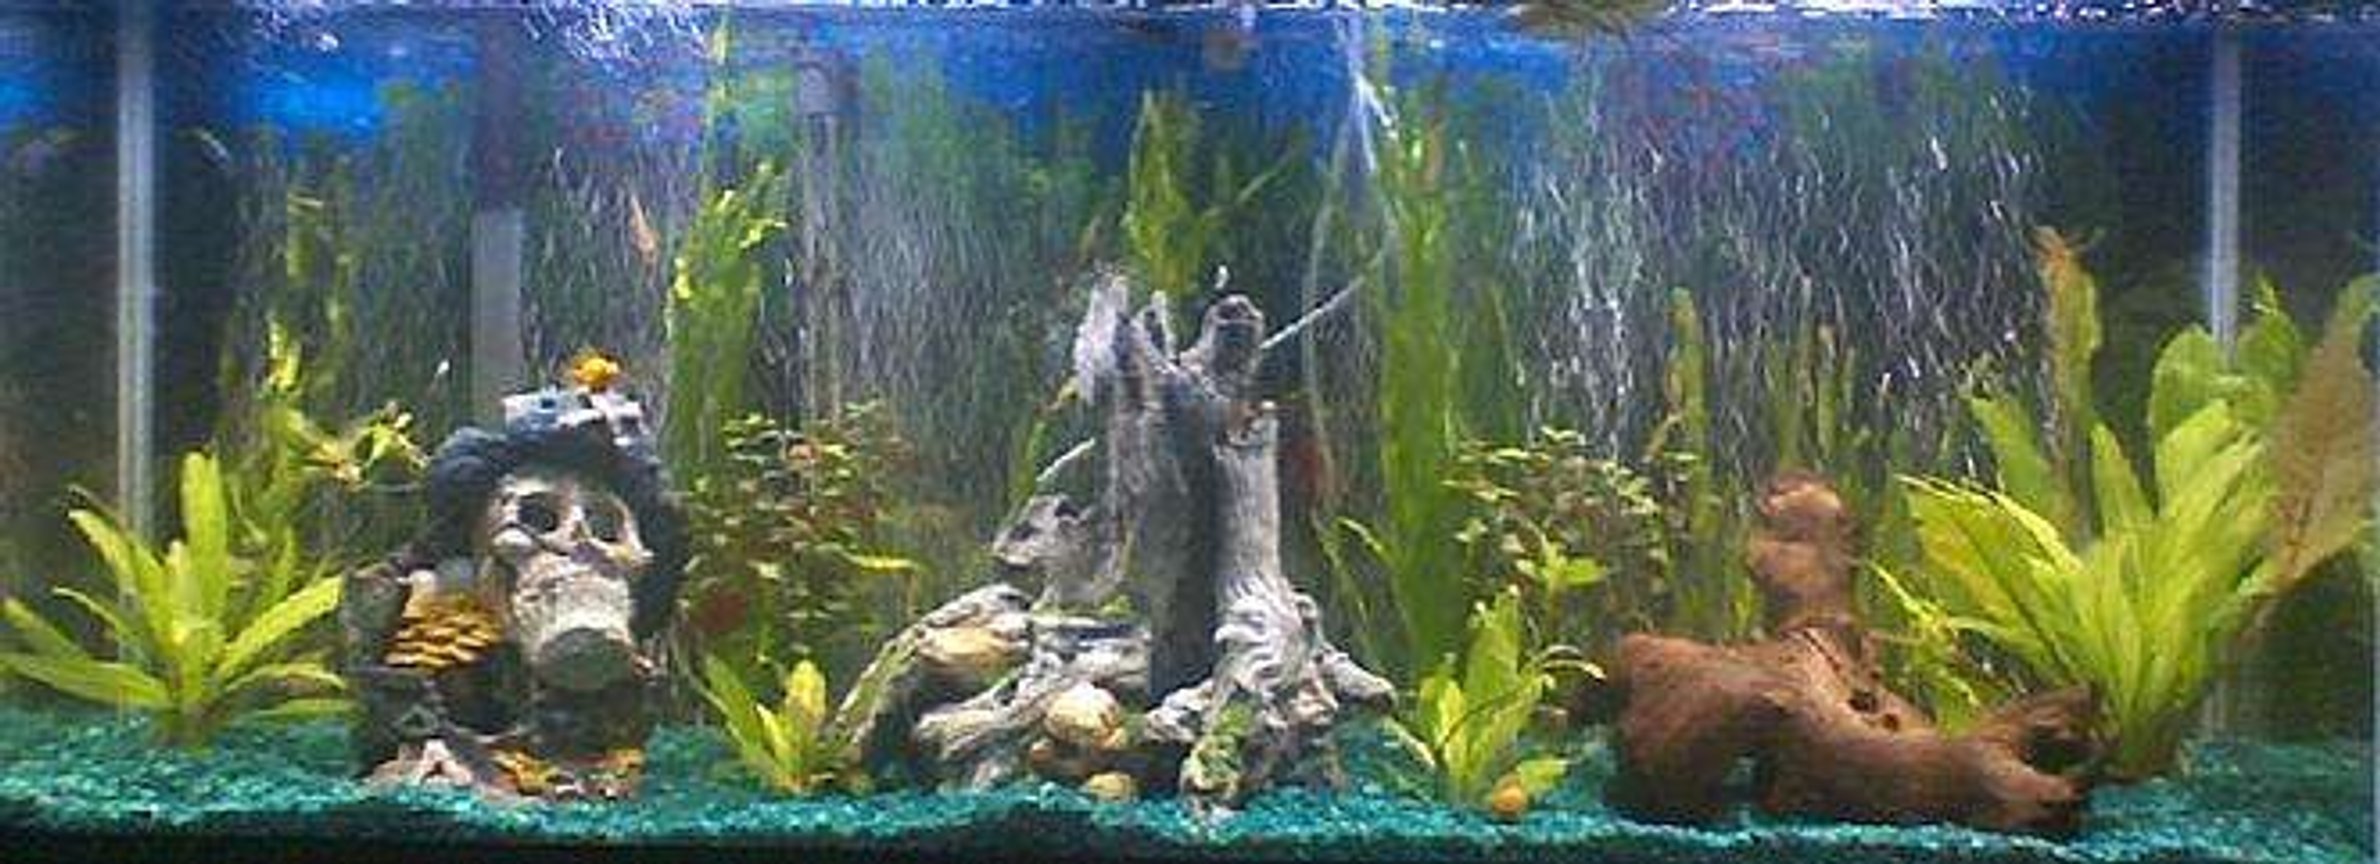 55 gallons planted tank (mostly live plants and fish) - My tank